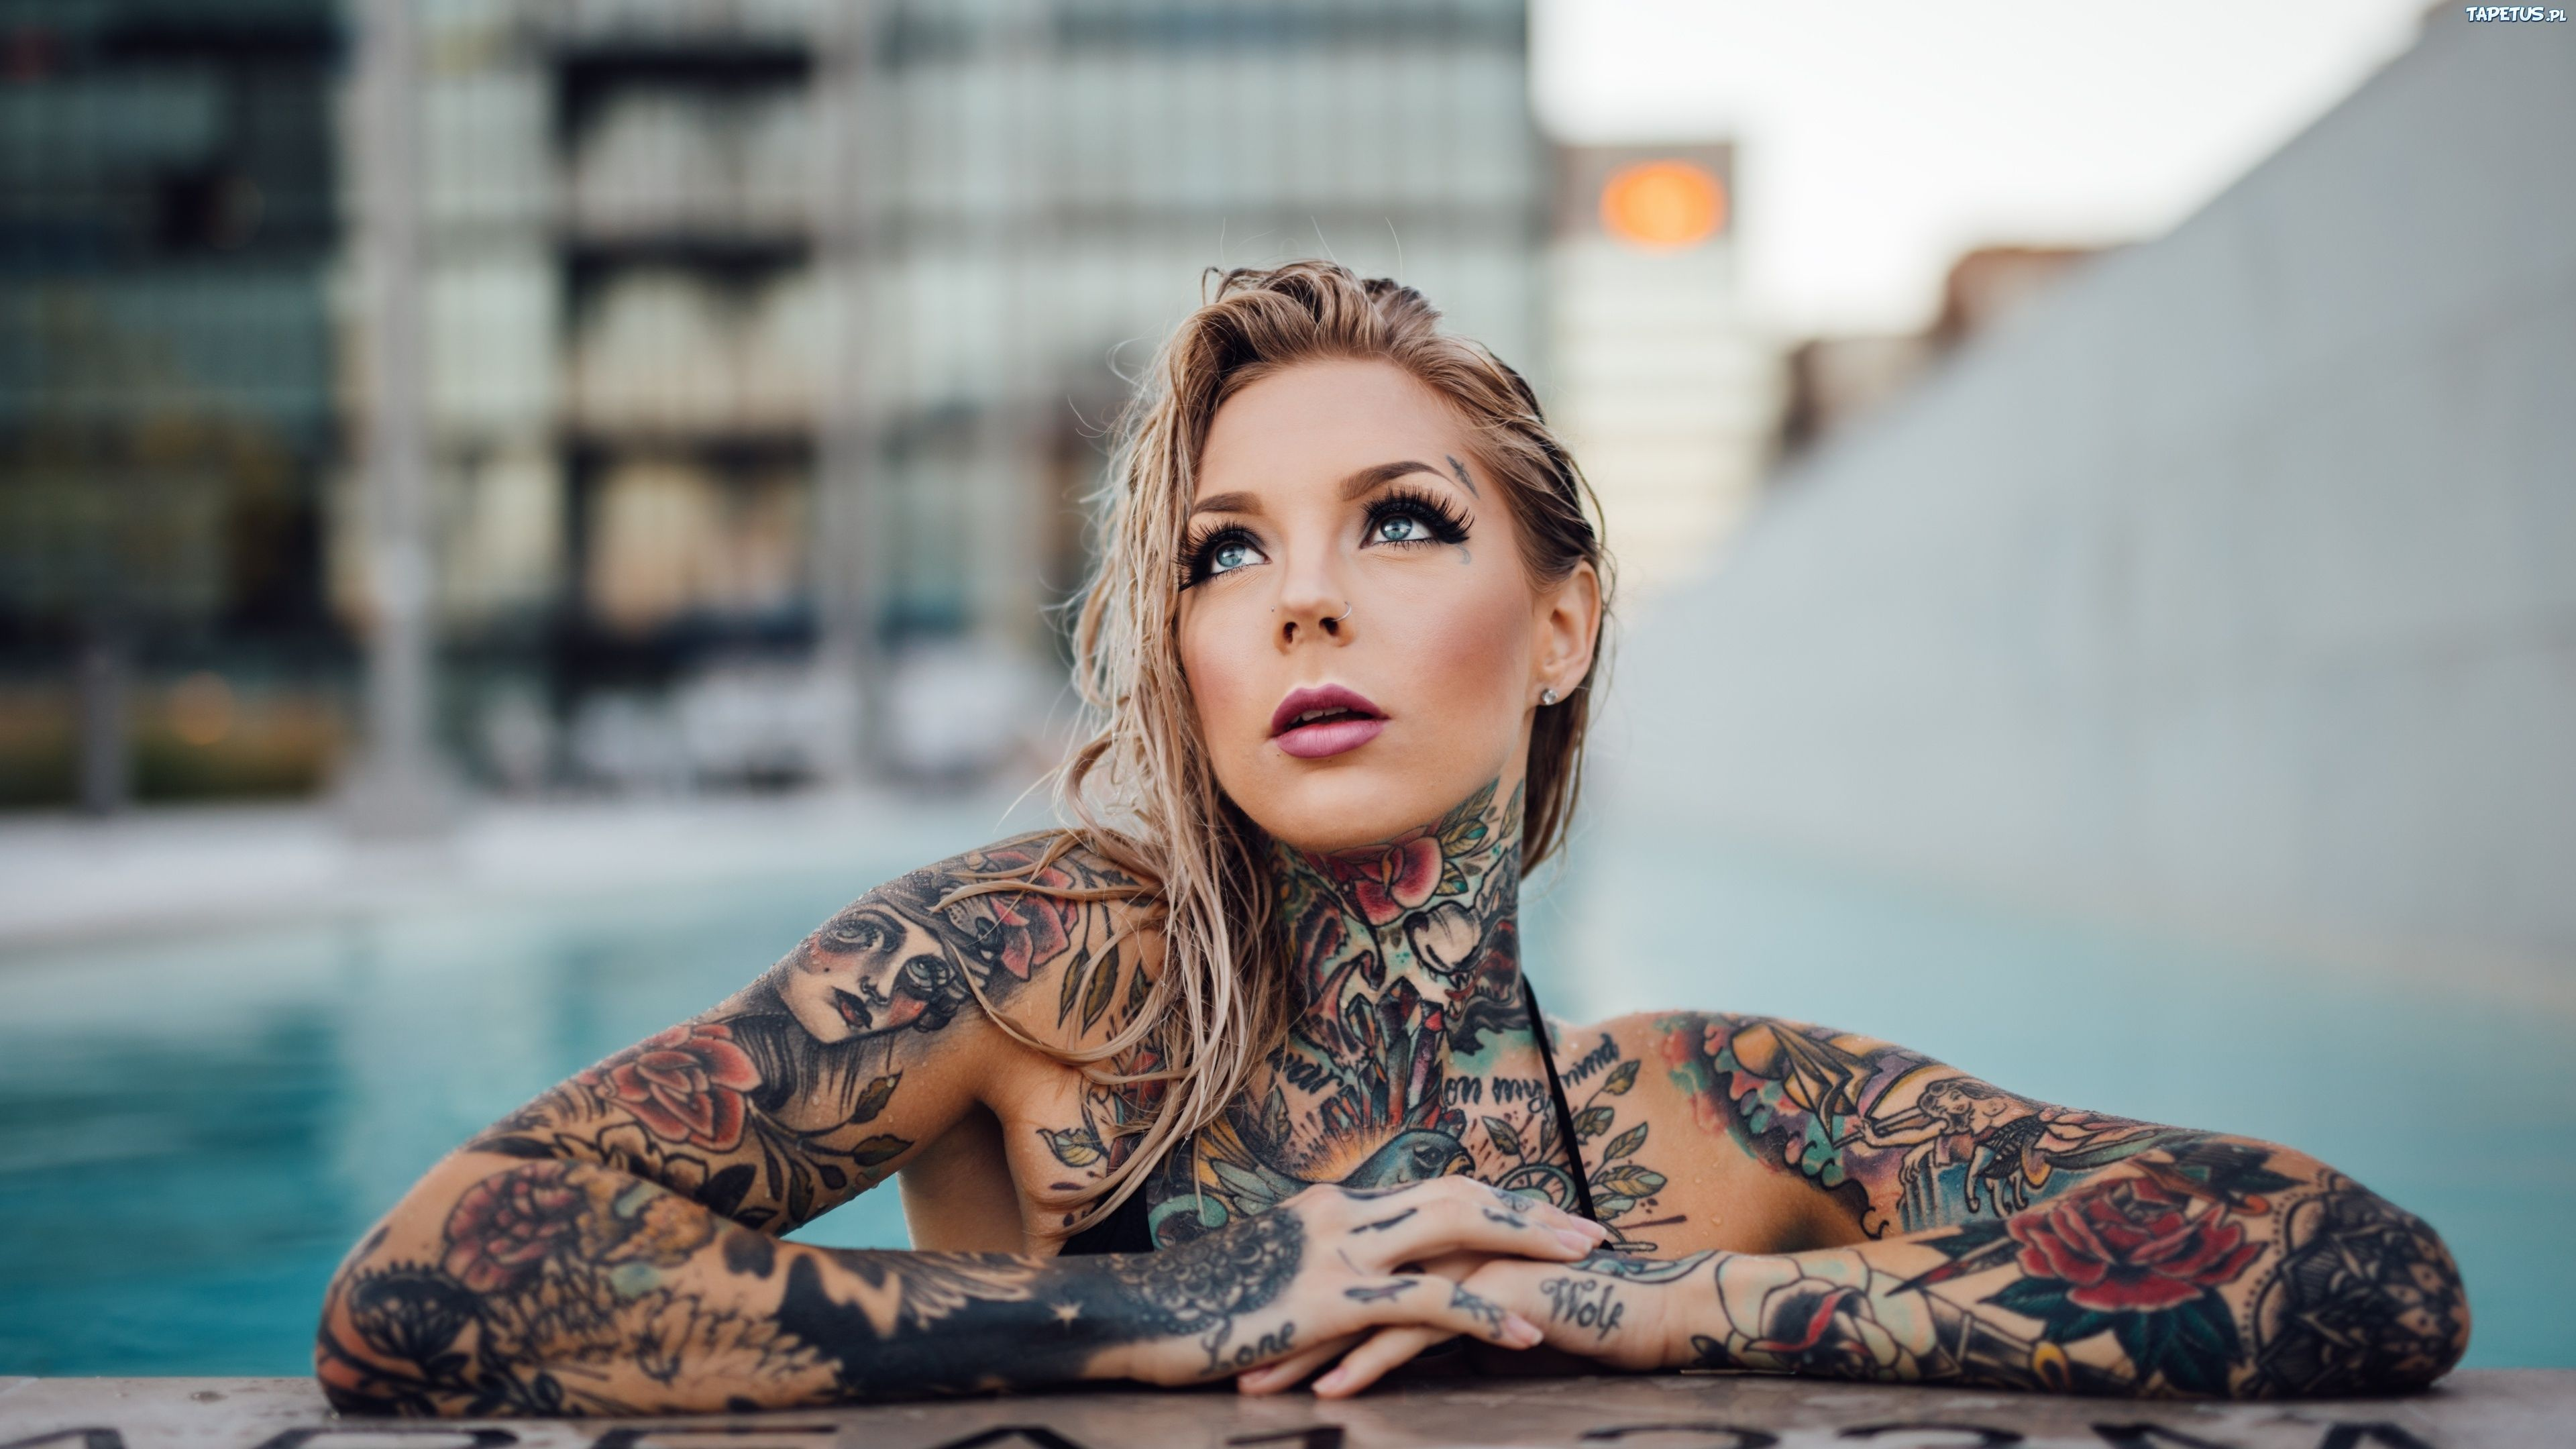 Tattoo Girl Wallpapers Top Free Tattoo Girl Backgrounds